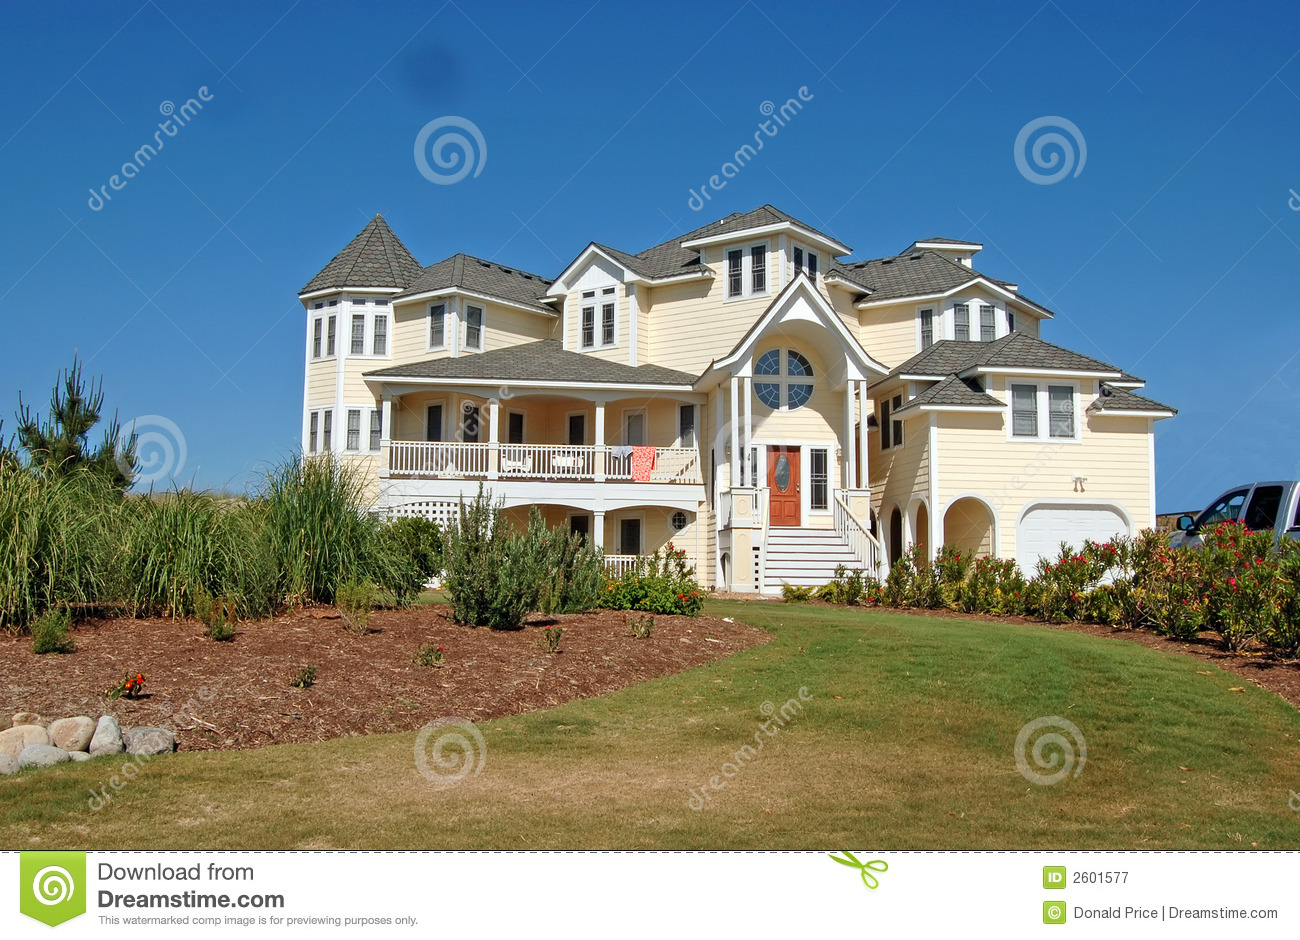 Luxury beach house stock image image of ocean for Free luxury home images